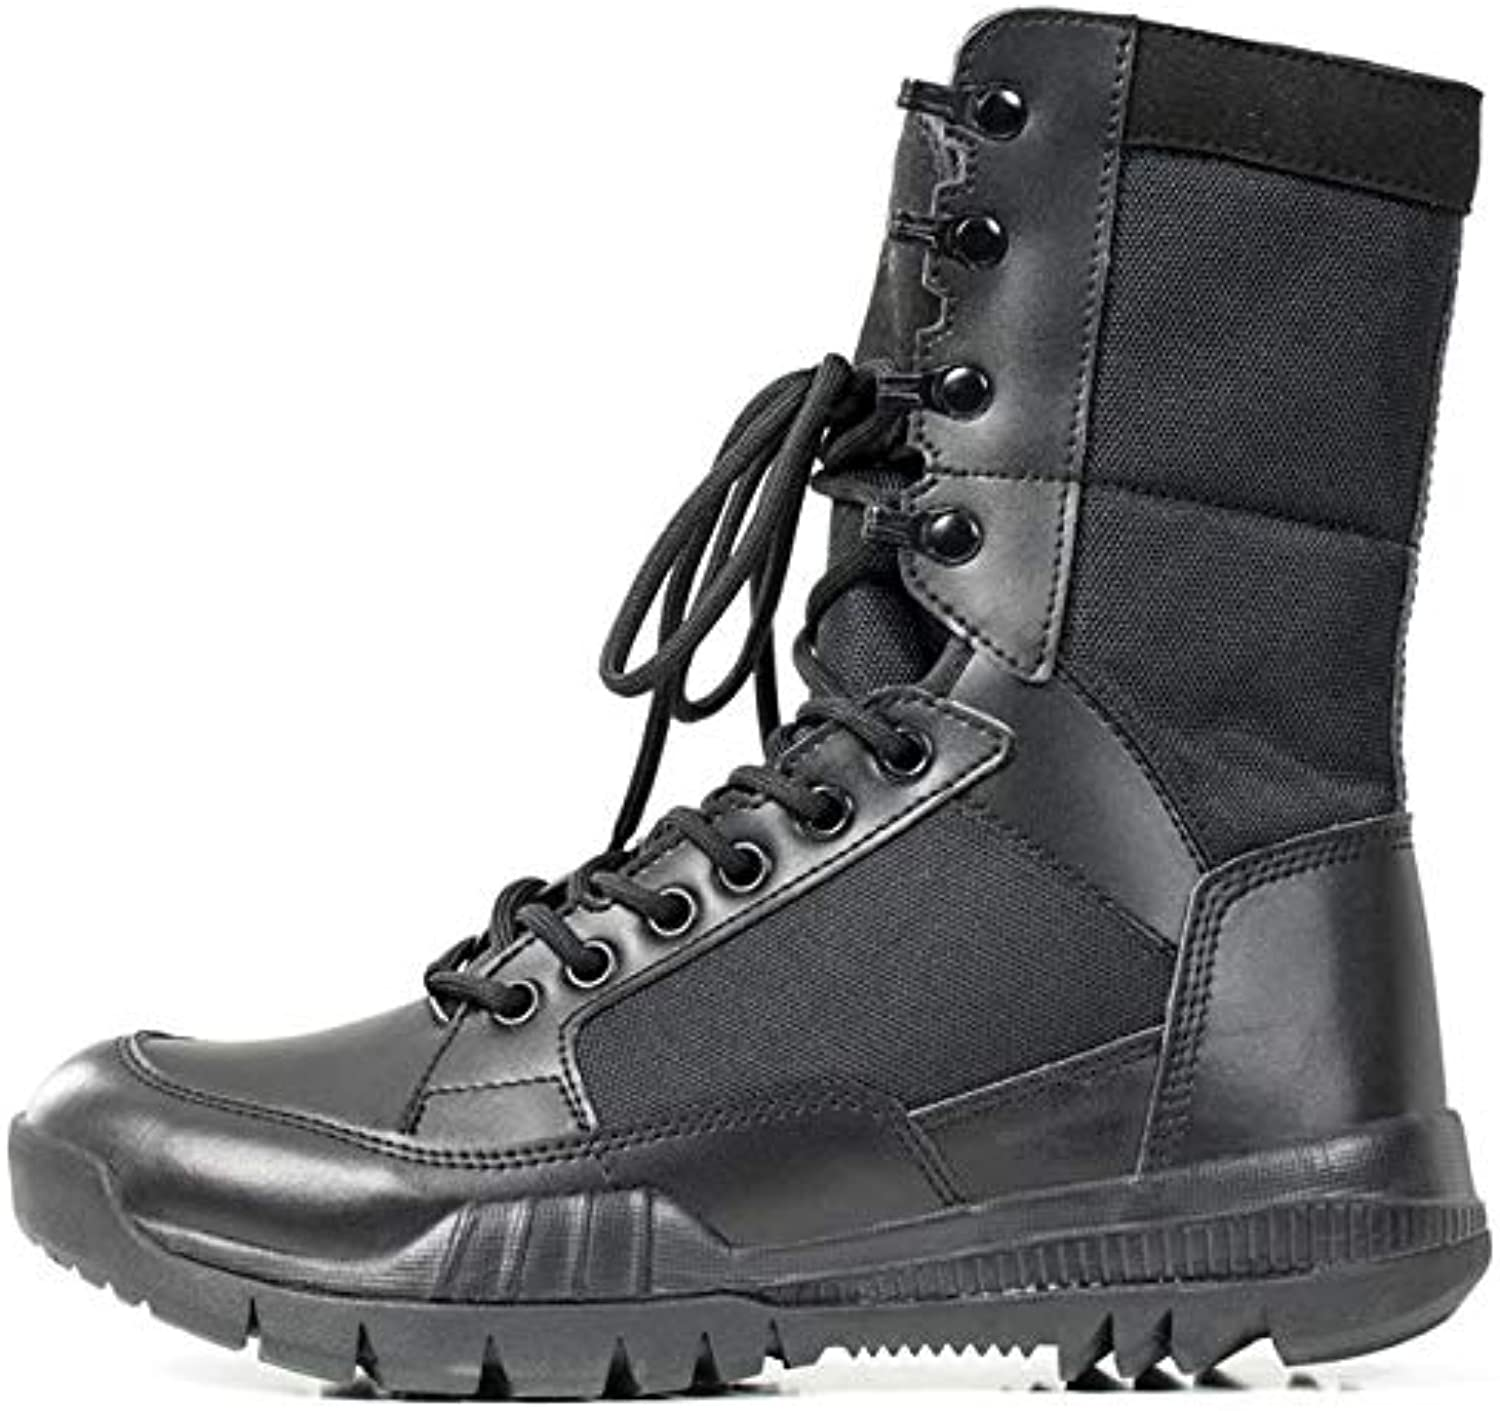 Men's Military Combat Boots Desert Hiking Boots Leather for Men Patrol Ankle Lace-Up shoes Vintage Casual Outdoor for Army Hiking Work